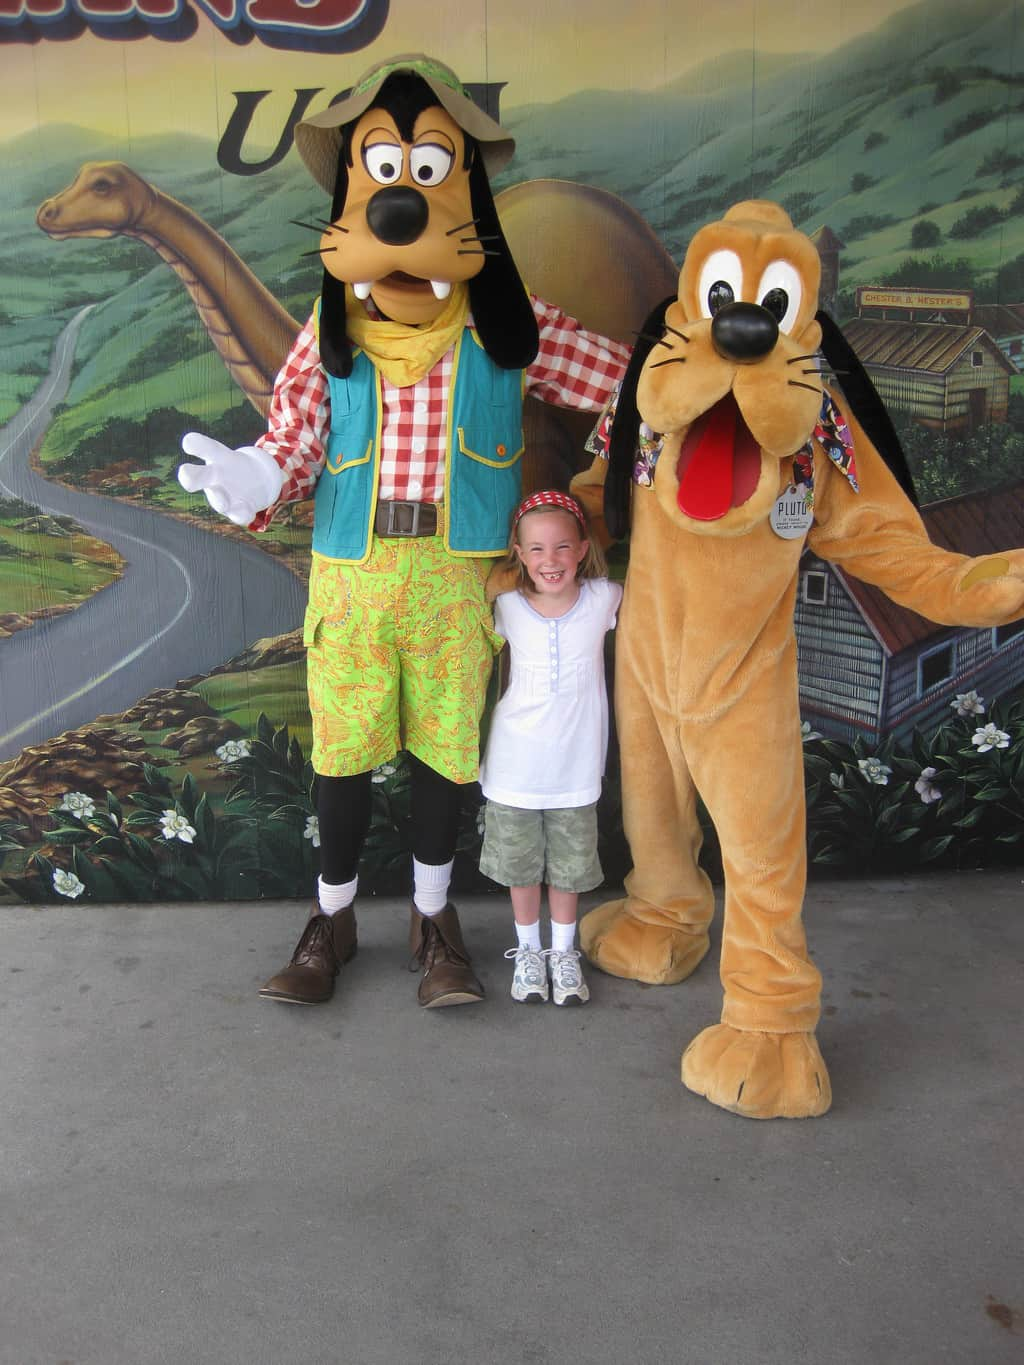 Pluto and Goofy at Dinoland in Animal Kingdom 2010